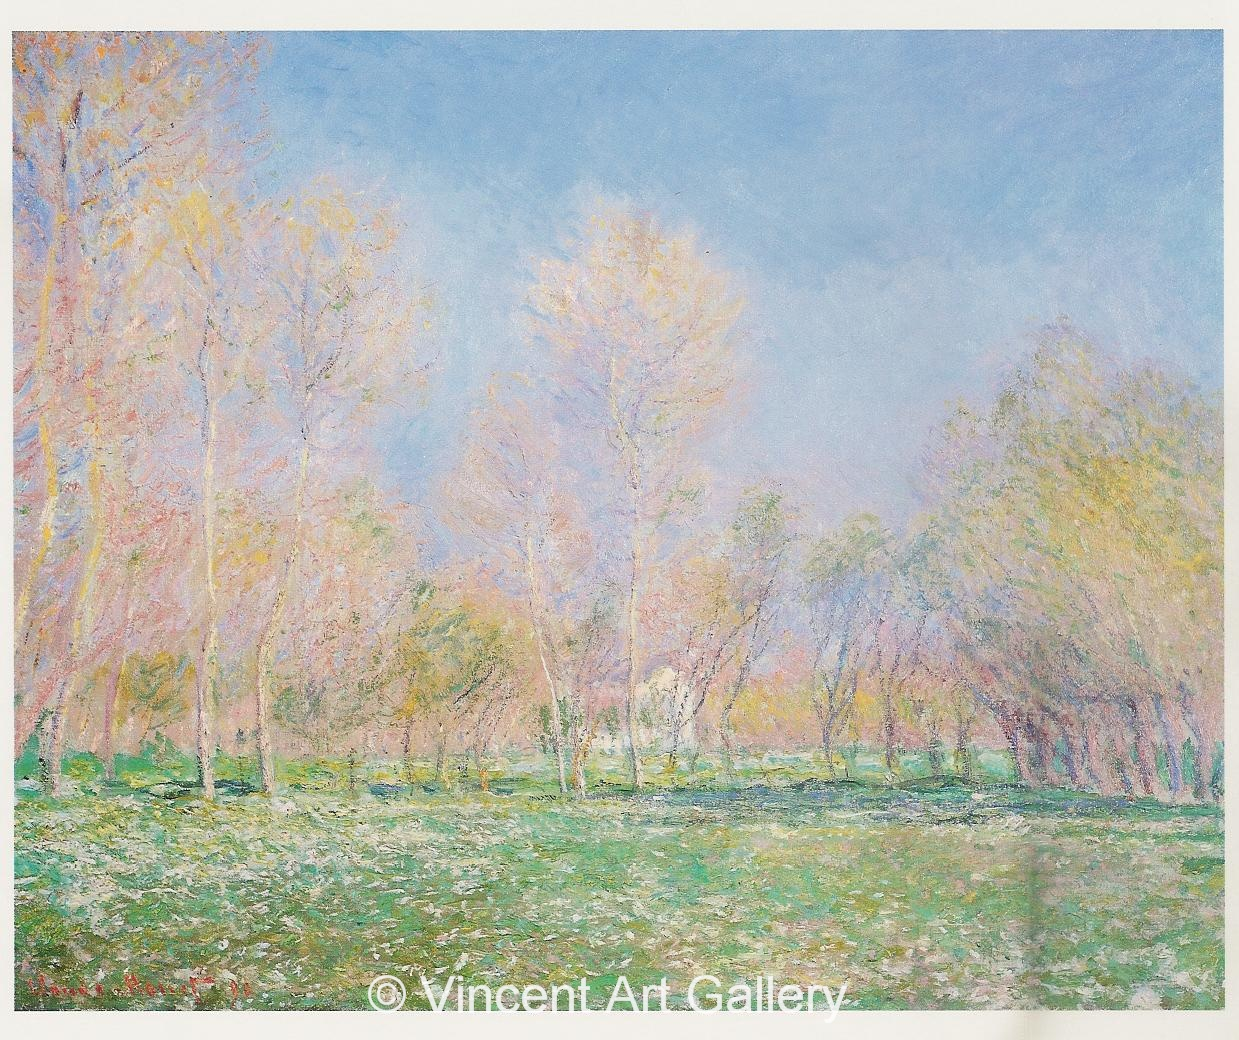 A550. MONET, Spring in Giverny 001